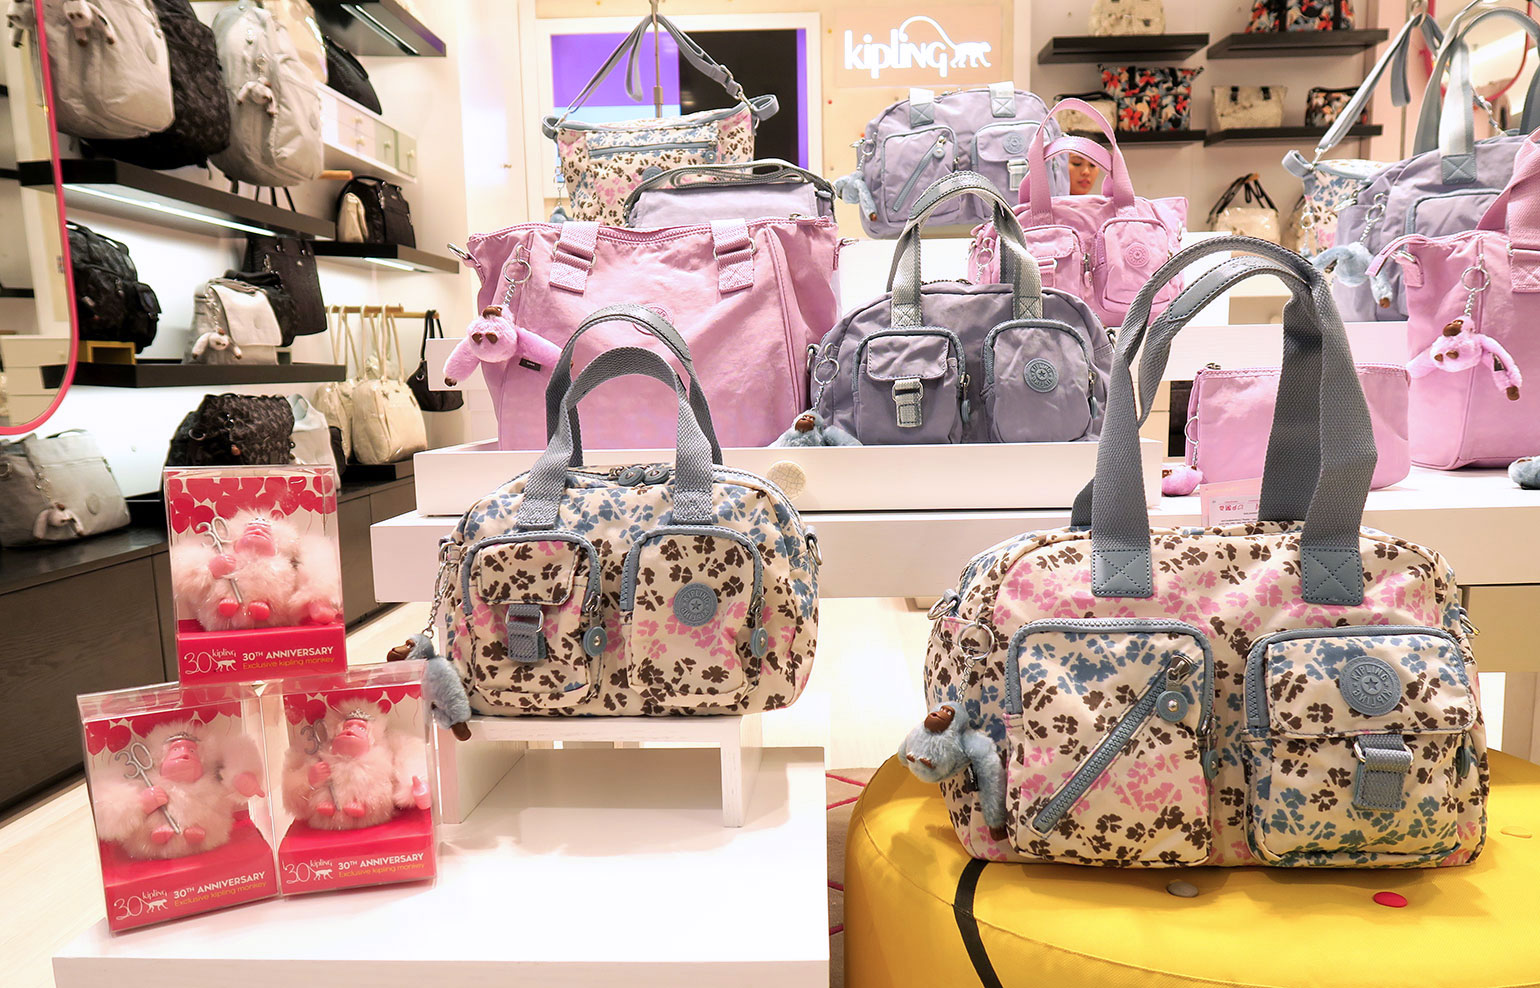 4.1 Kipling Philippines 30 years - Uptown Mall - Dream Garden Collection - Gen-zel.com(c)